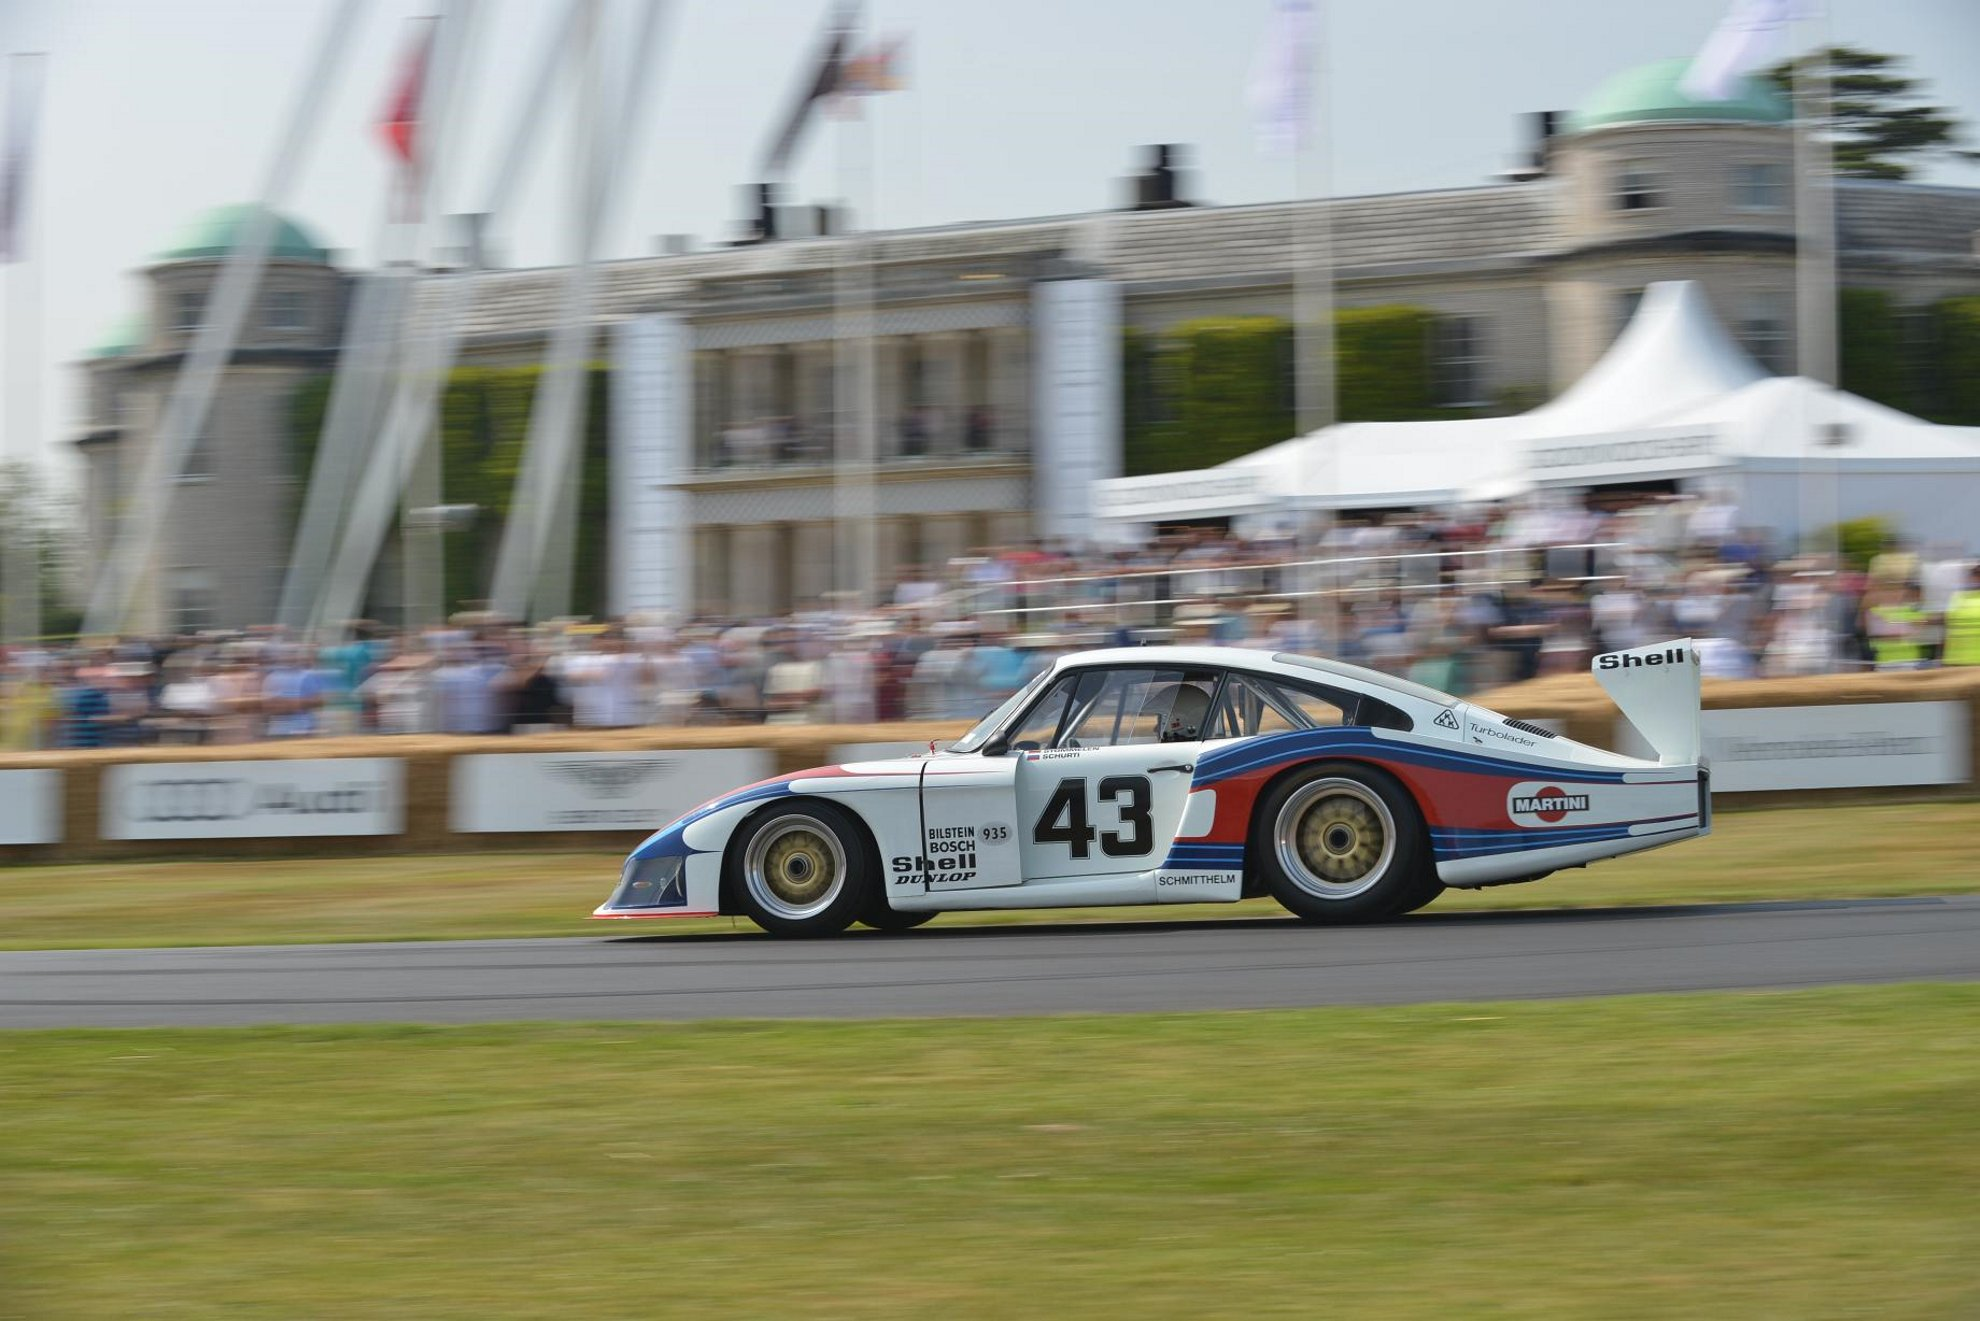 Porsche at the Goodwood_Festival_of_Speed